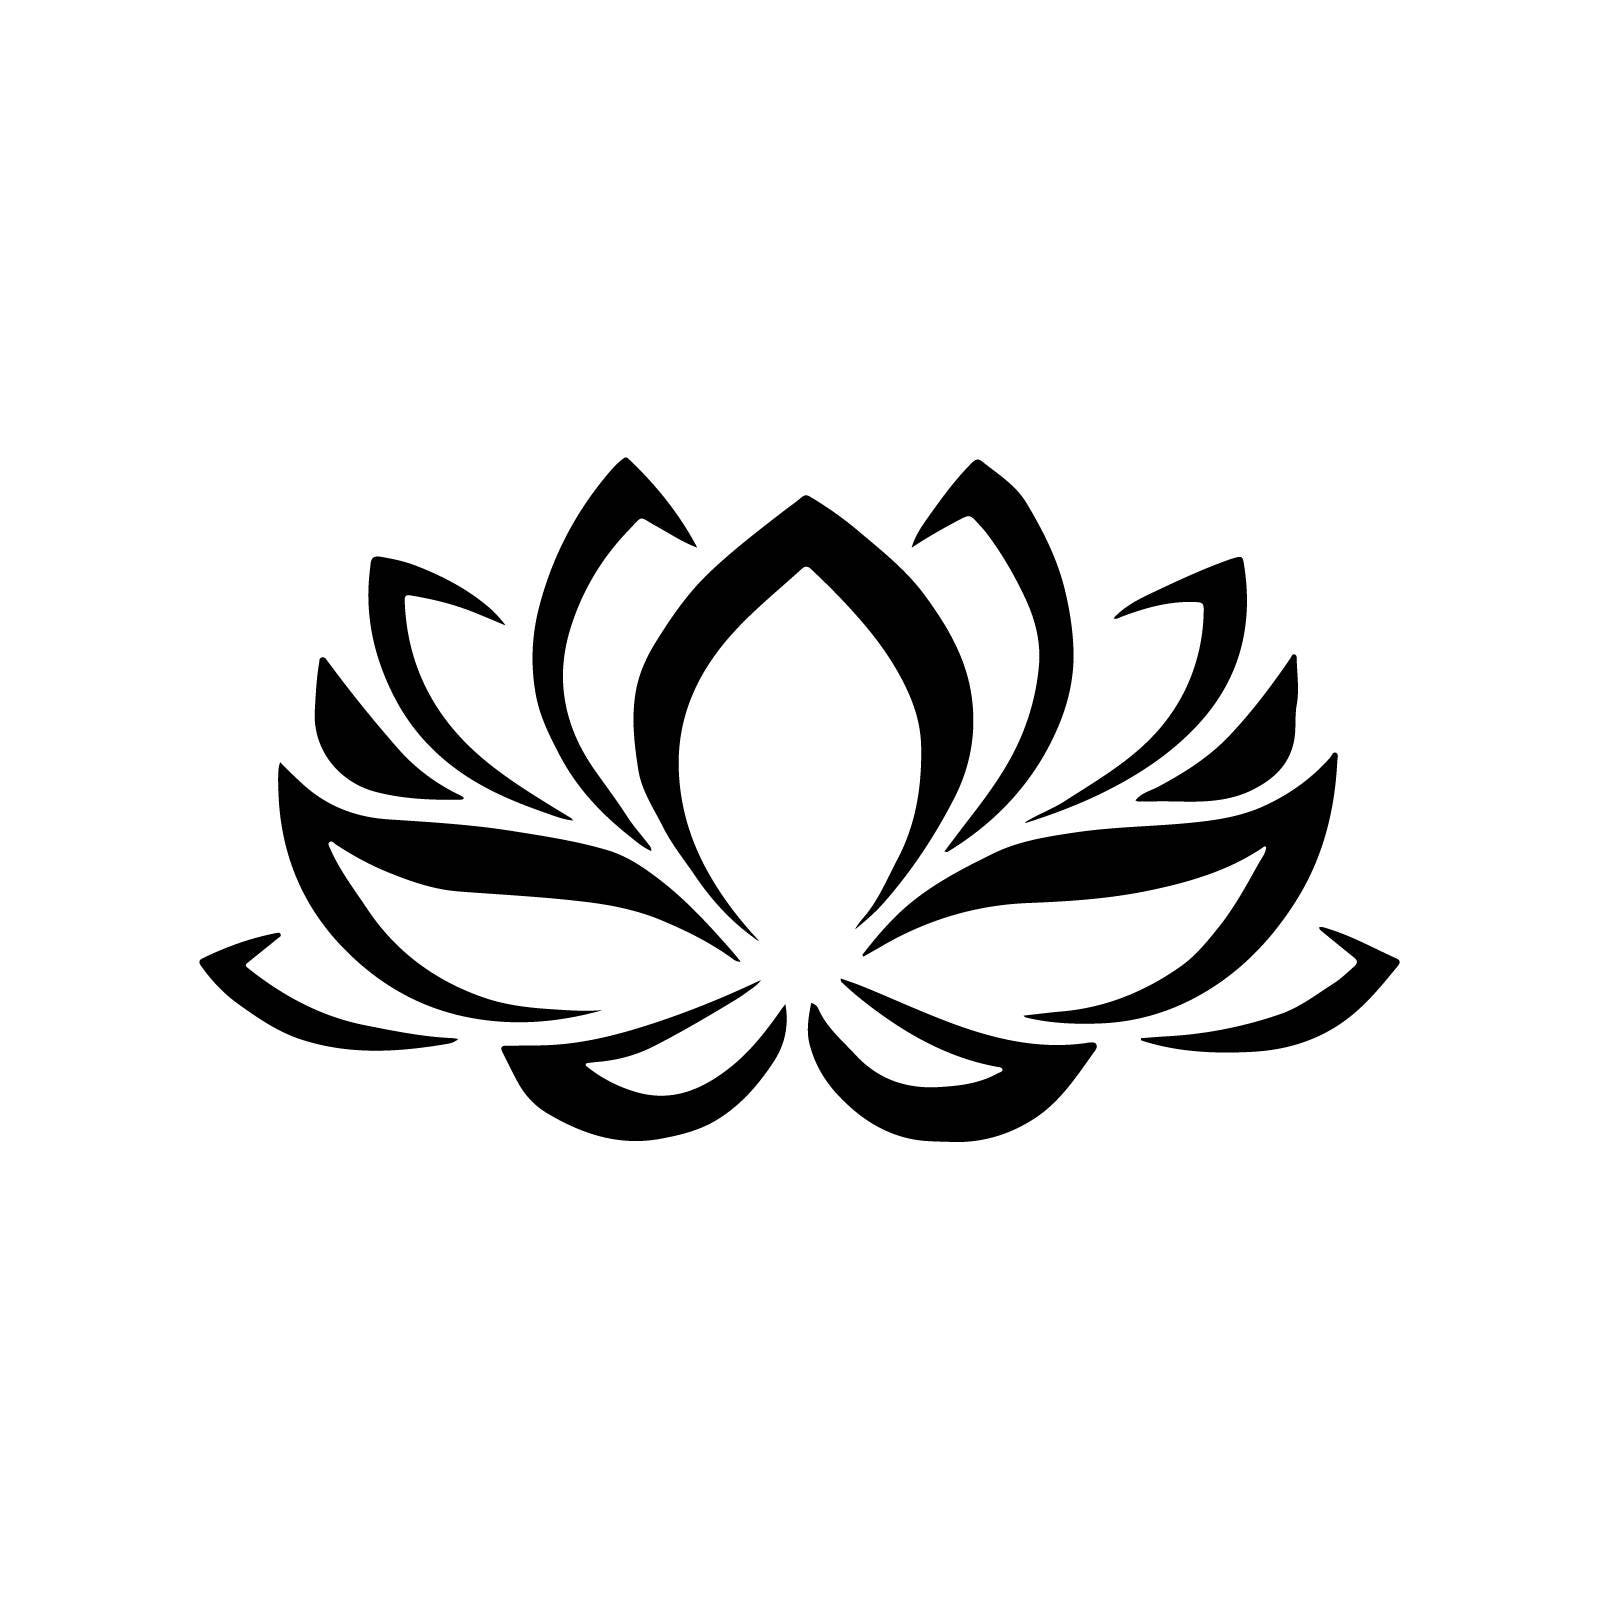 Stencil floral lotus flower stencil decoration 5 sizes svg pdf zoom izmirmasajfo Images